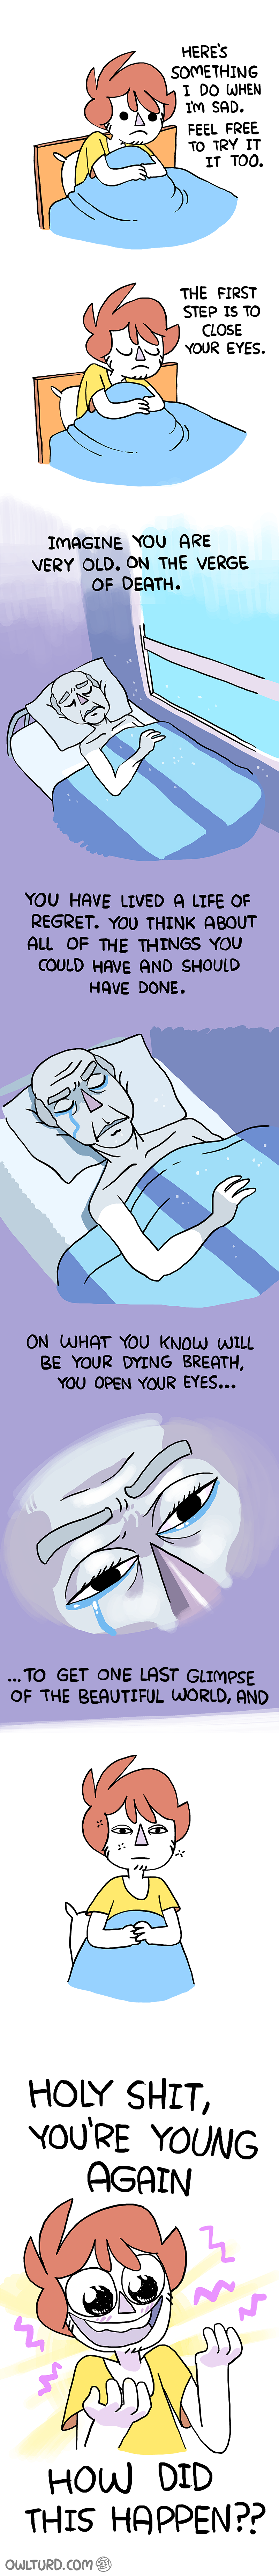 life-advice-web-comics-visualize-regret